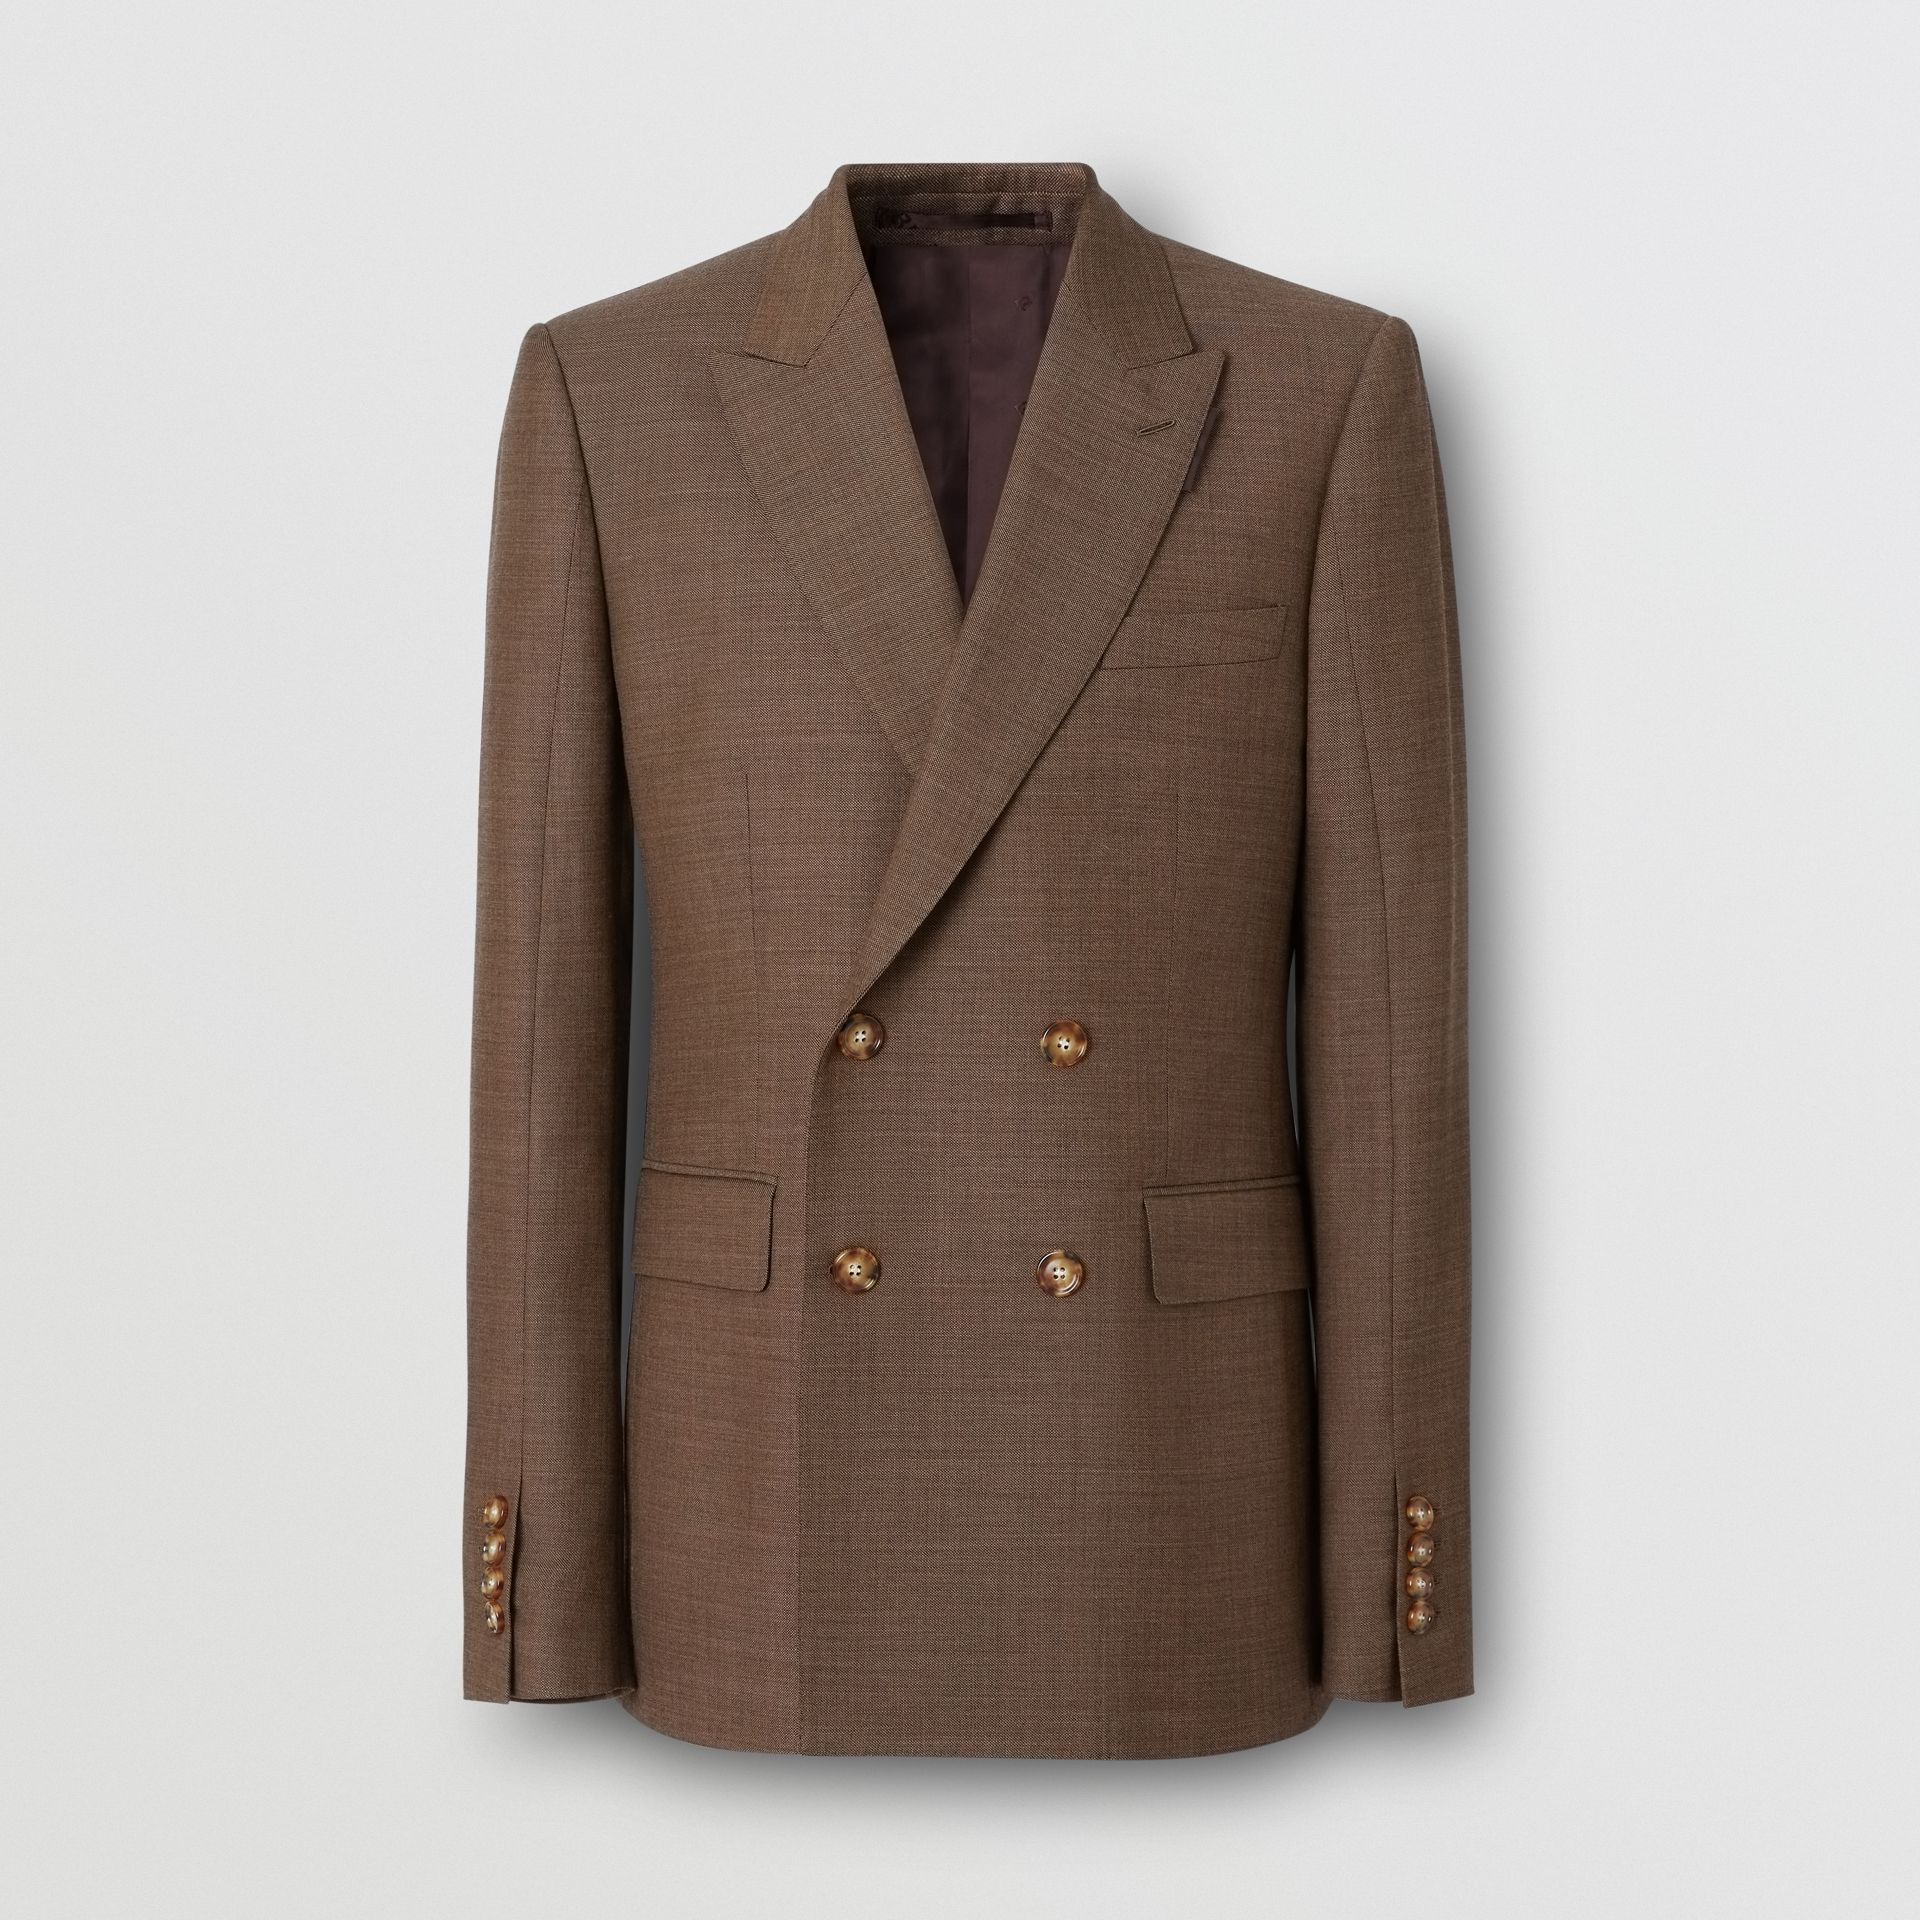 English Fit Sharkskin Wool Double-breasted Jacket in Deep Brown - Men | Burberry - gallery image 3